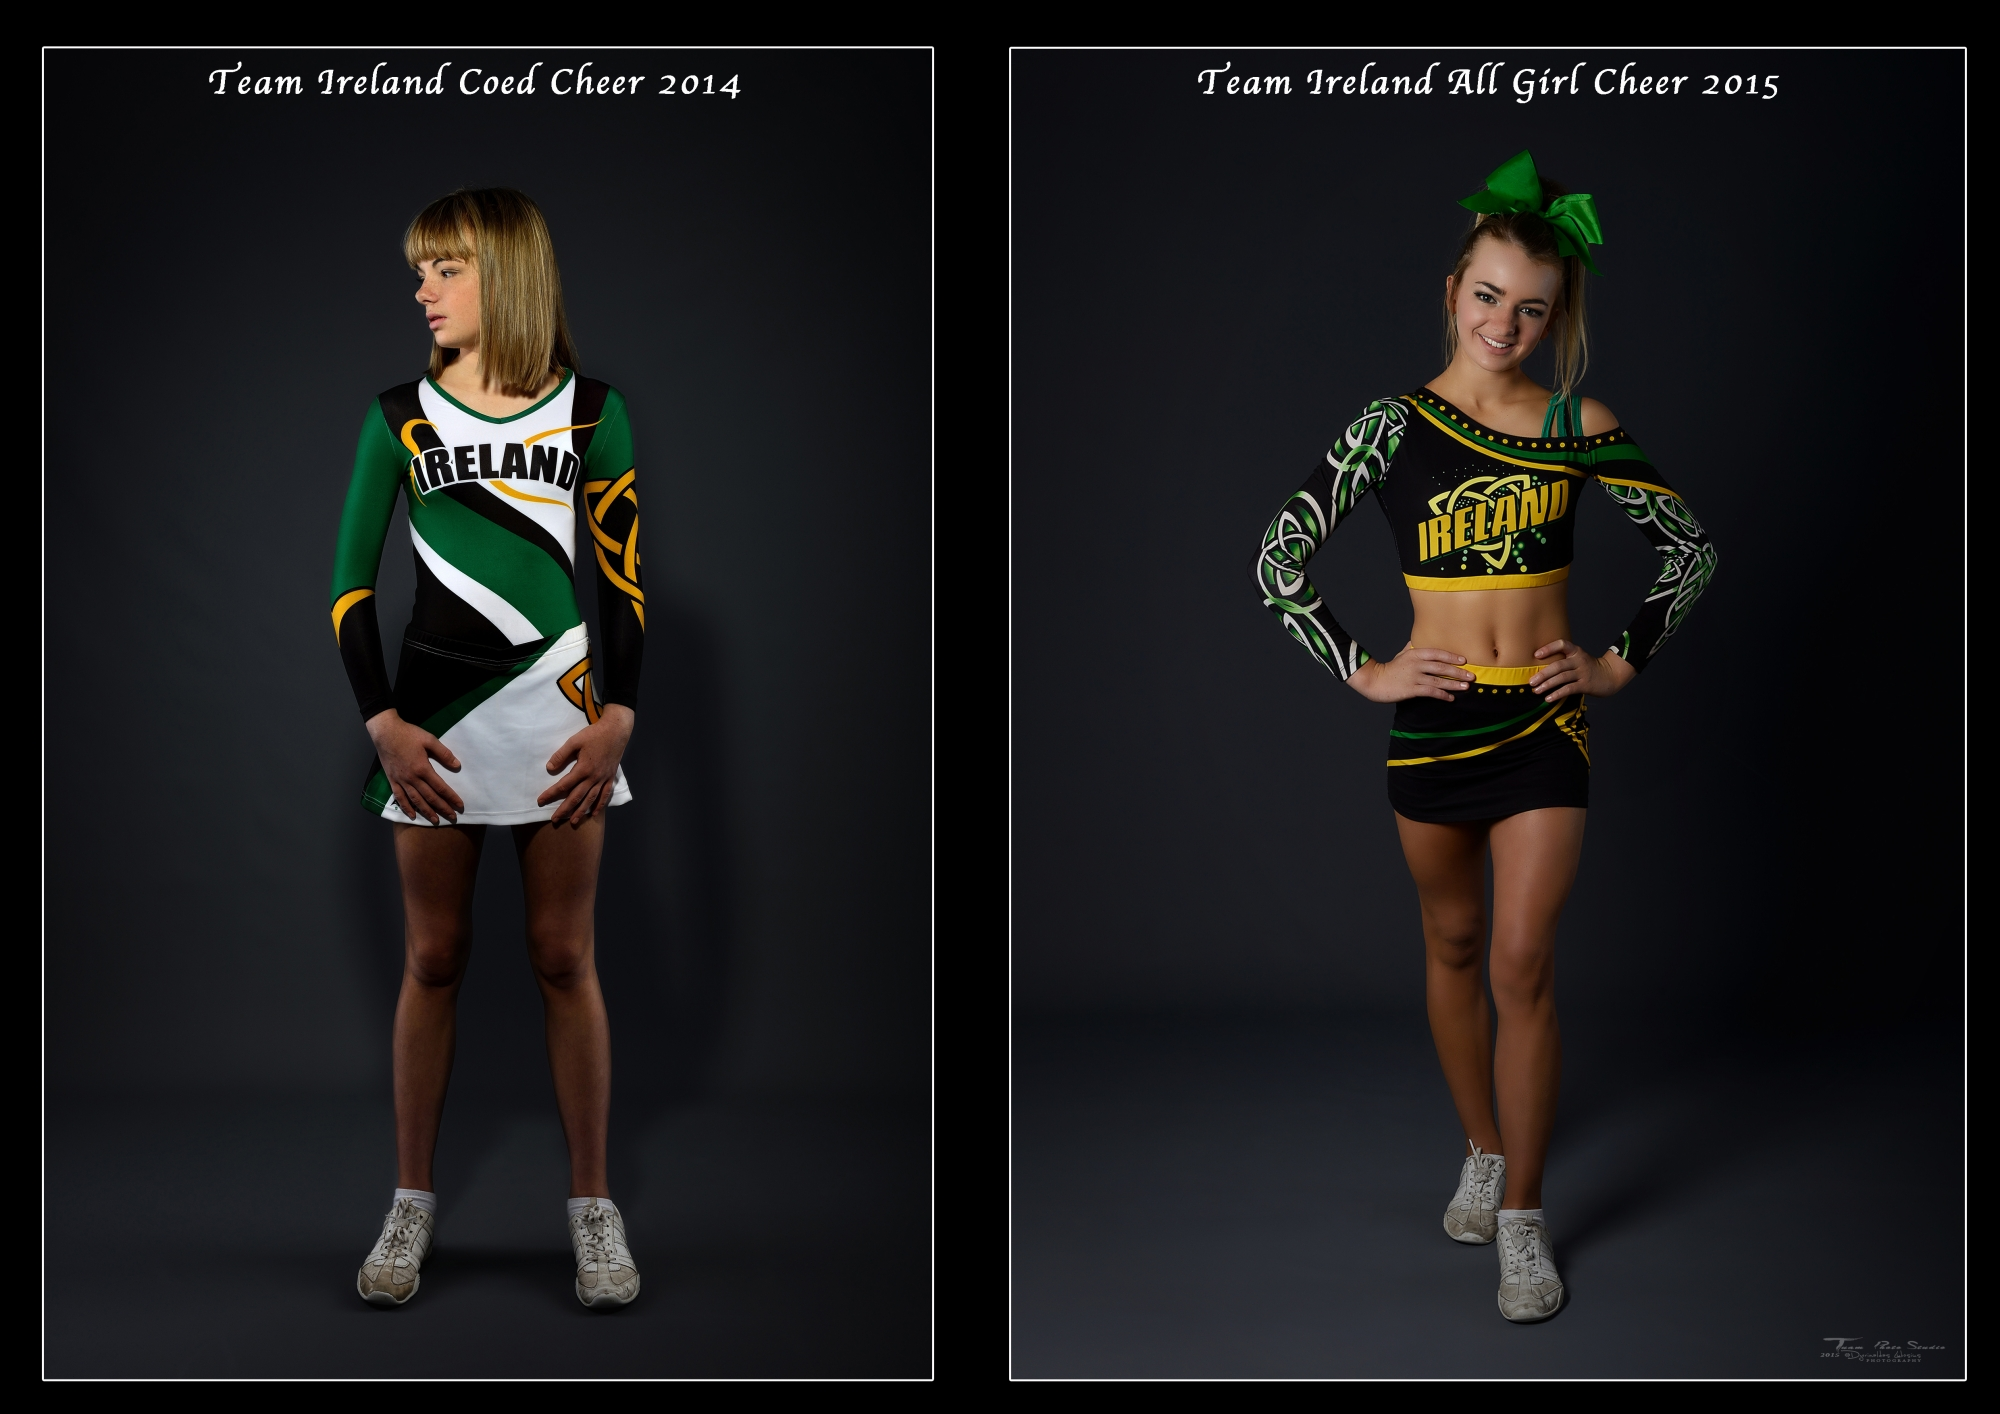 Team Ireland All Girl Cheer 2015